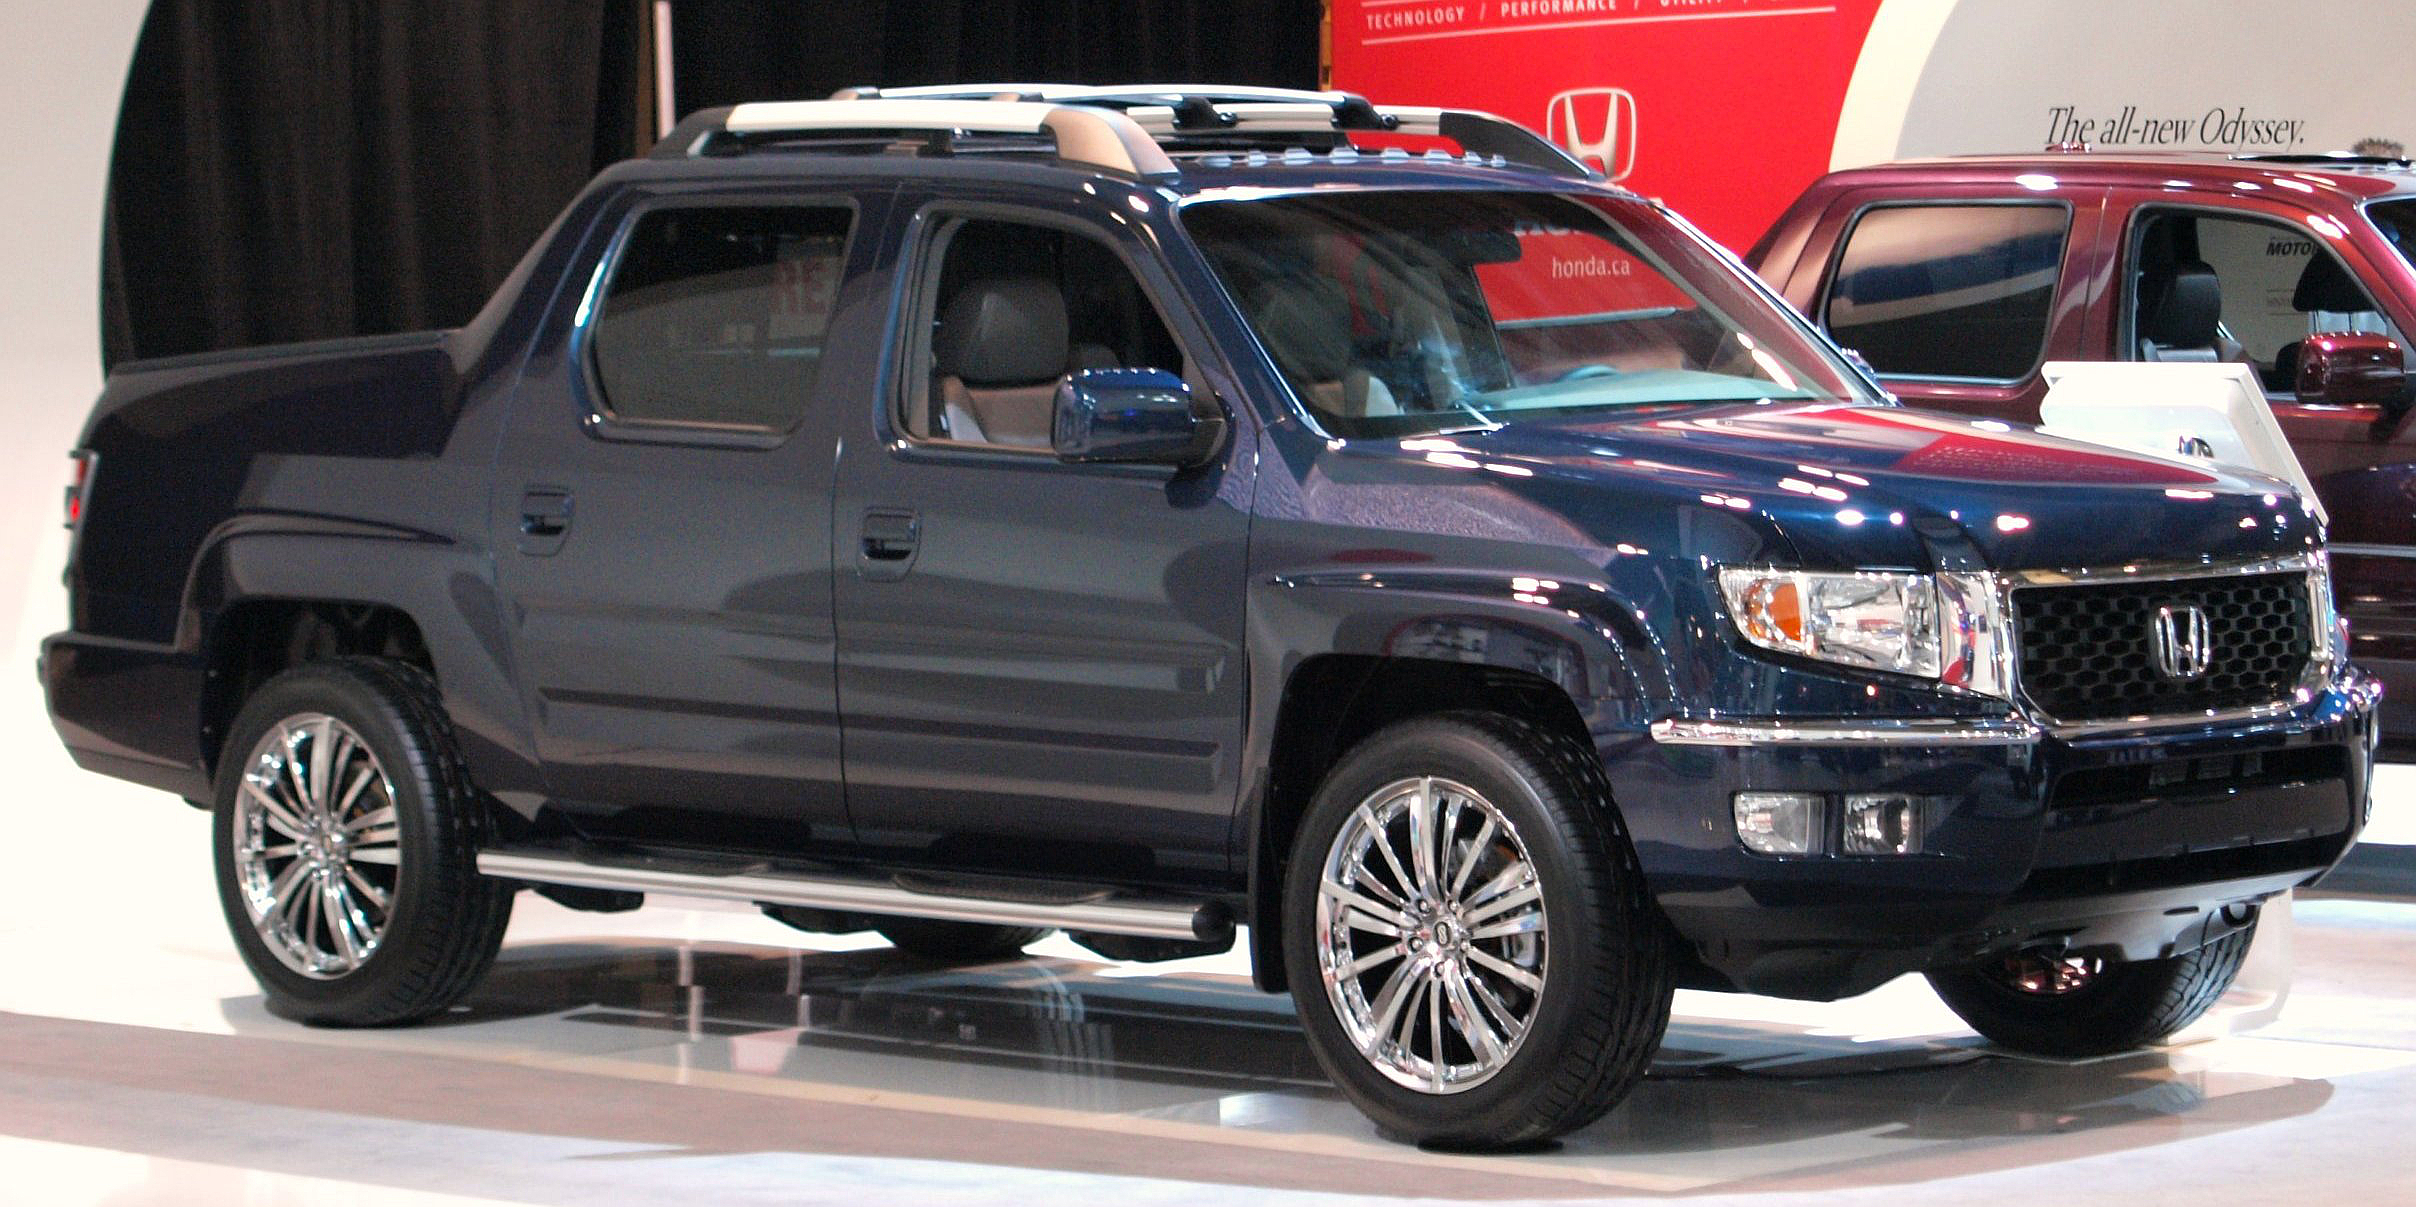 Honda_Ridgeline_%285482954615%29 Interesting Info About Honda Ridgeline 2008